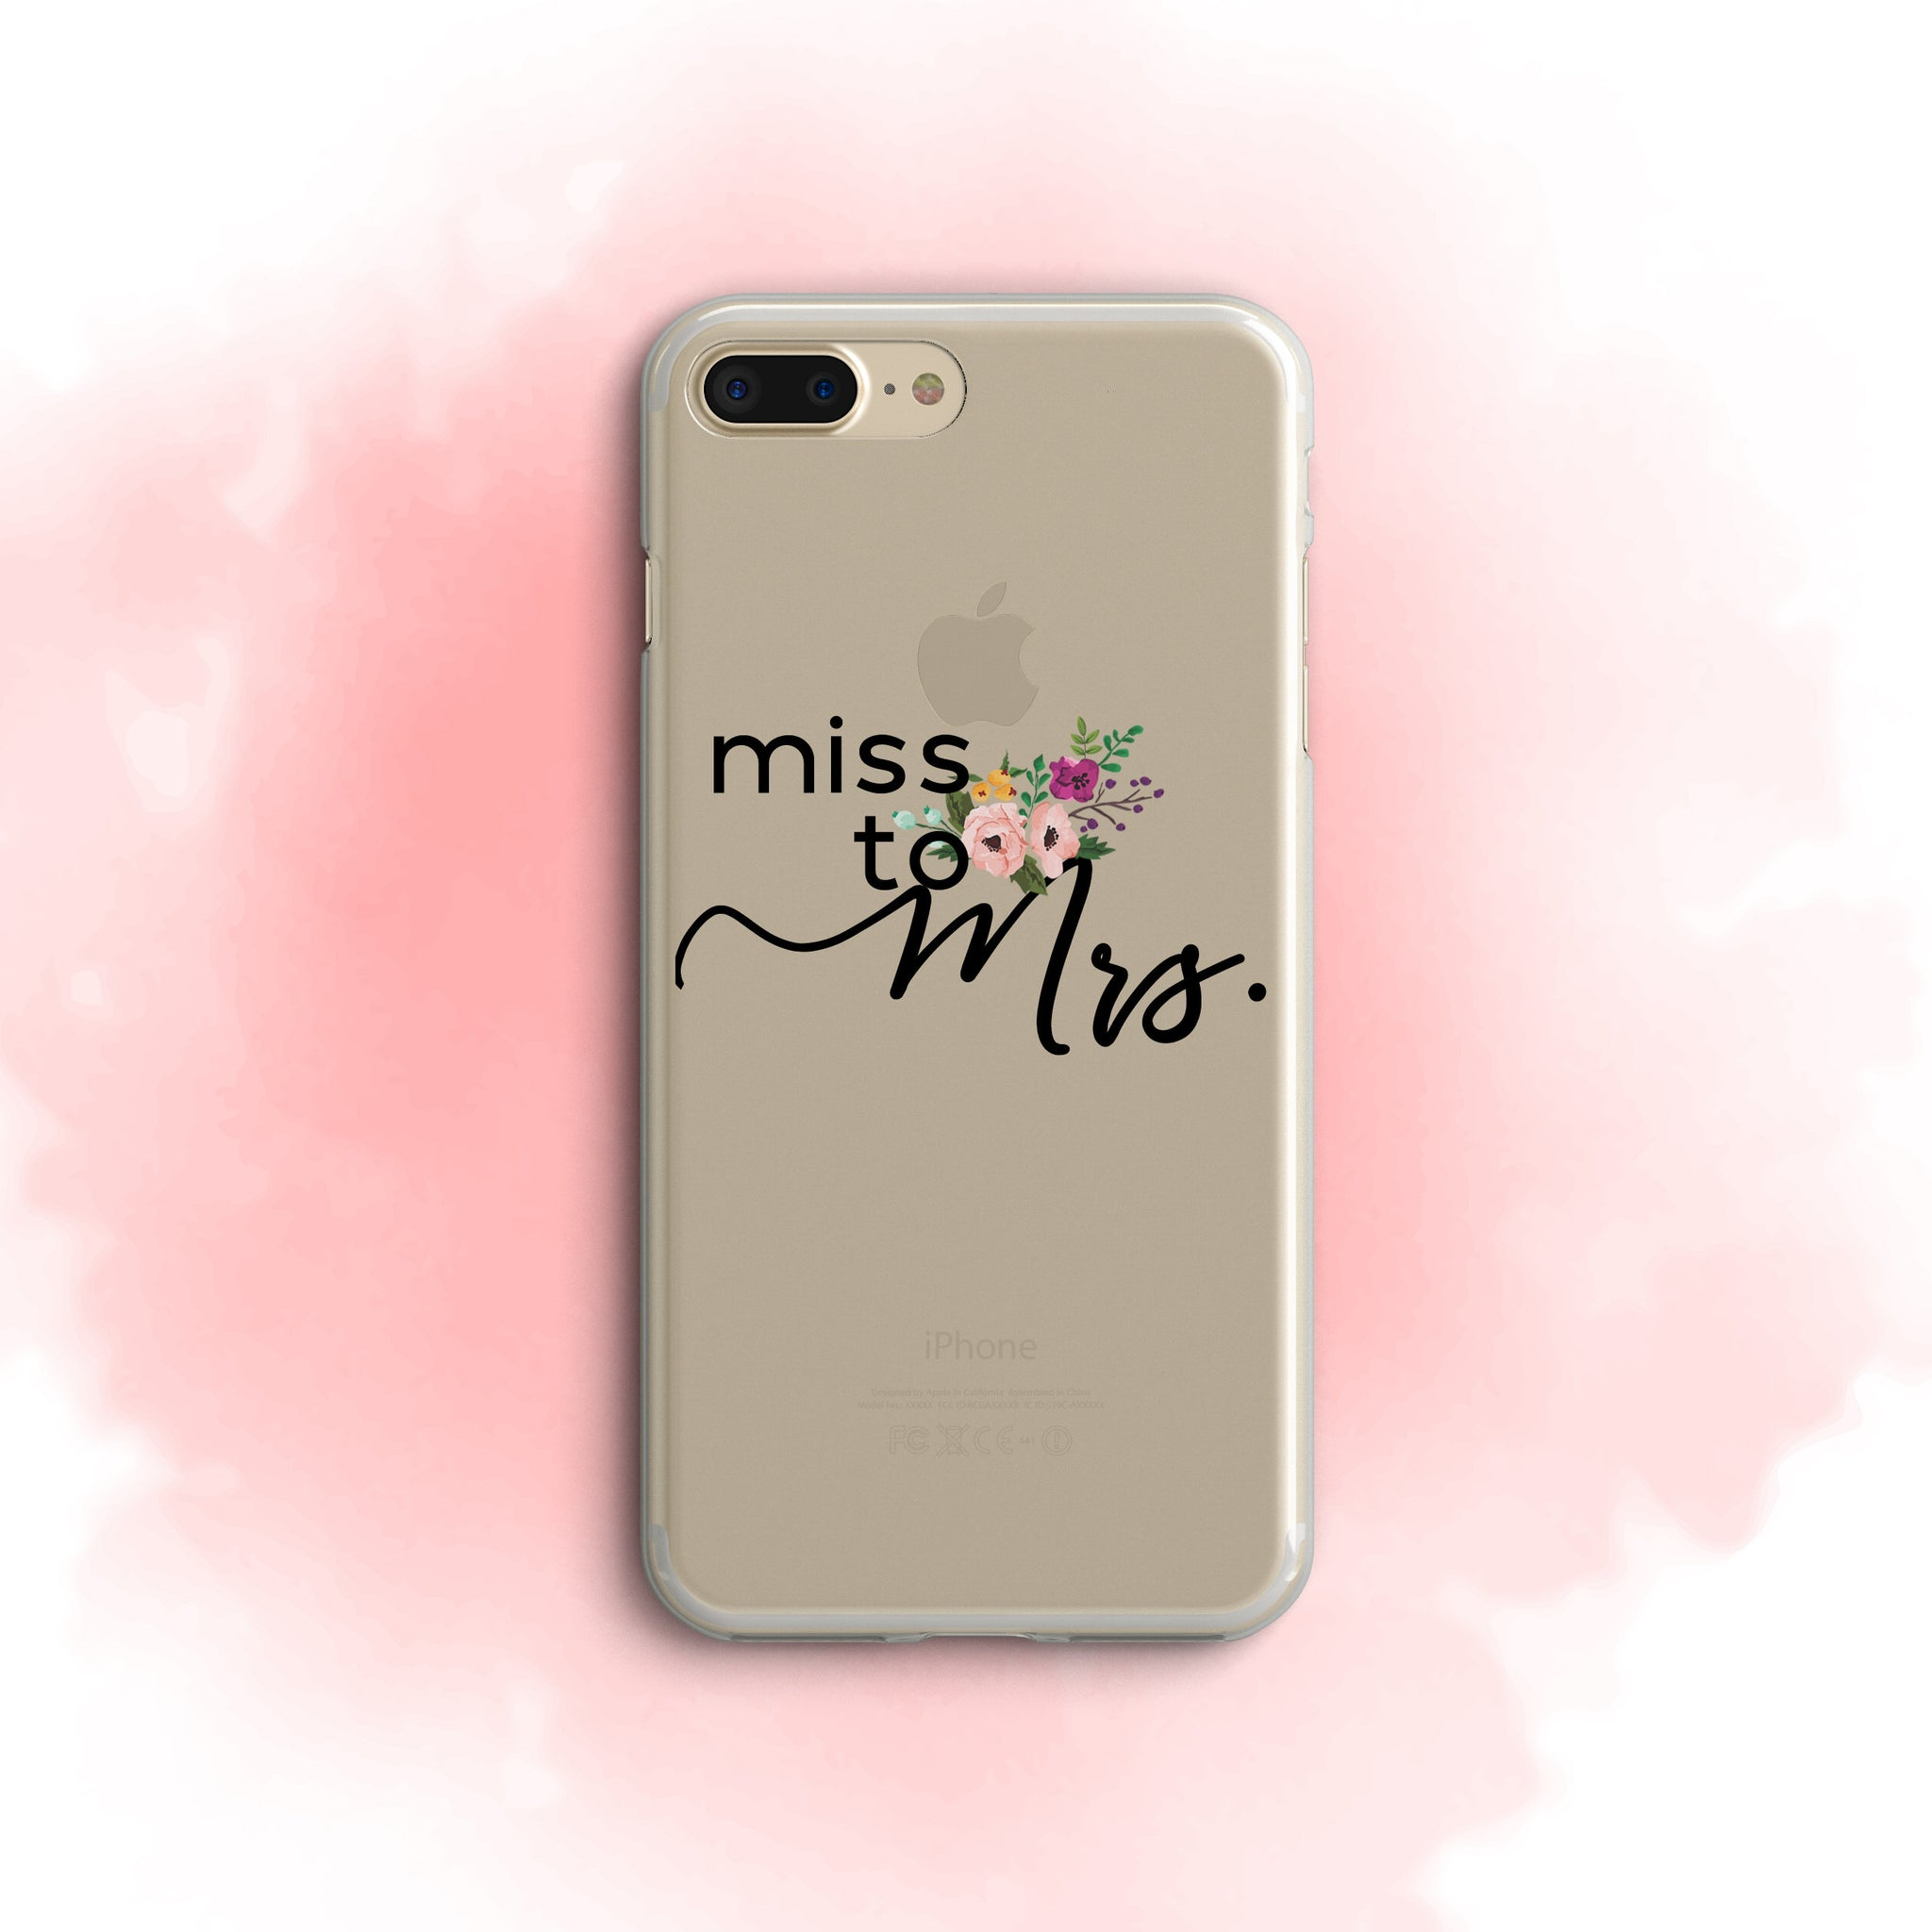 iPhone Case Clear Rubber Samsung Galaxy - Miss to Mrs. Case